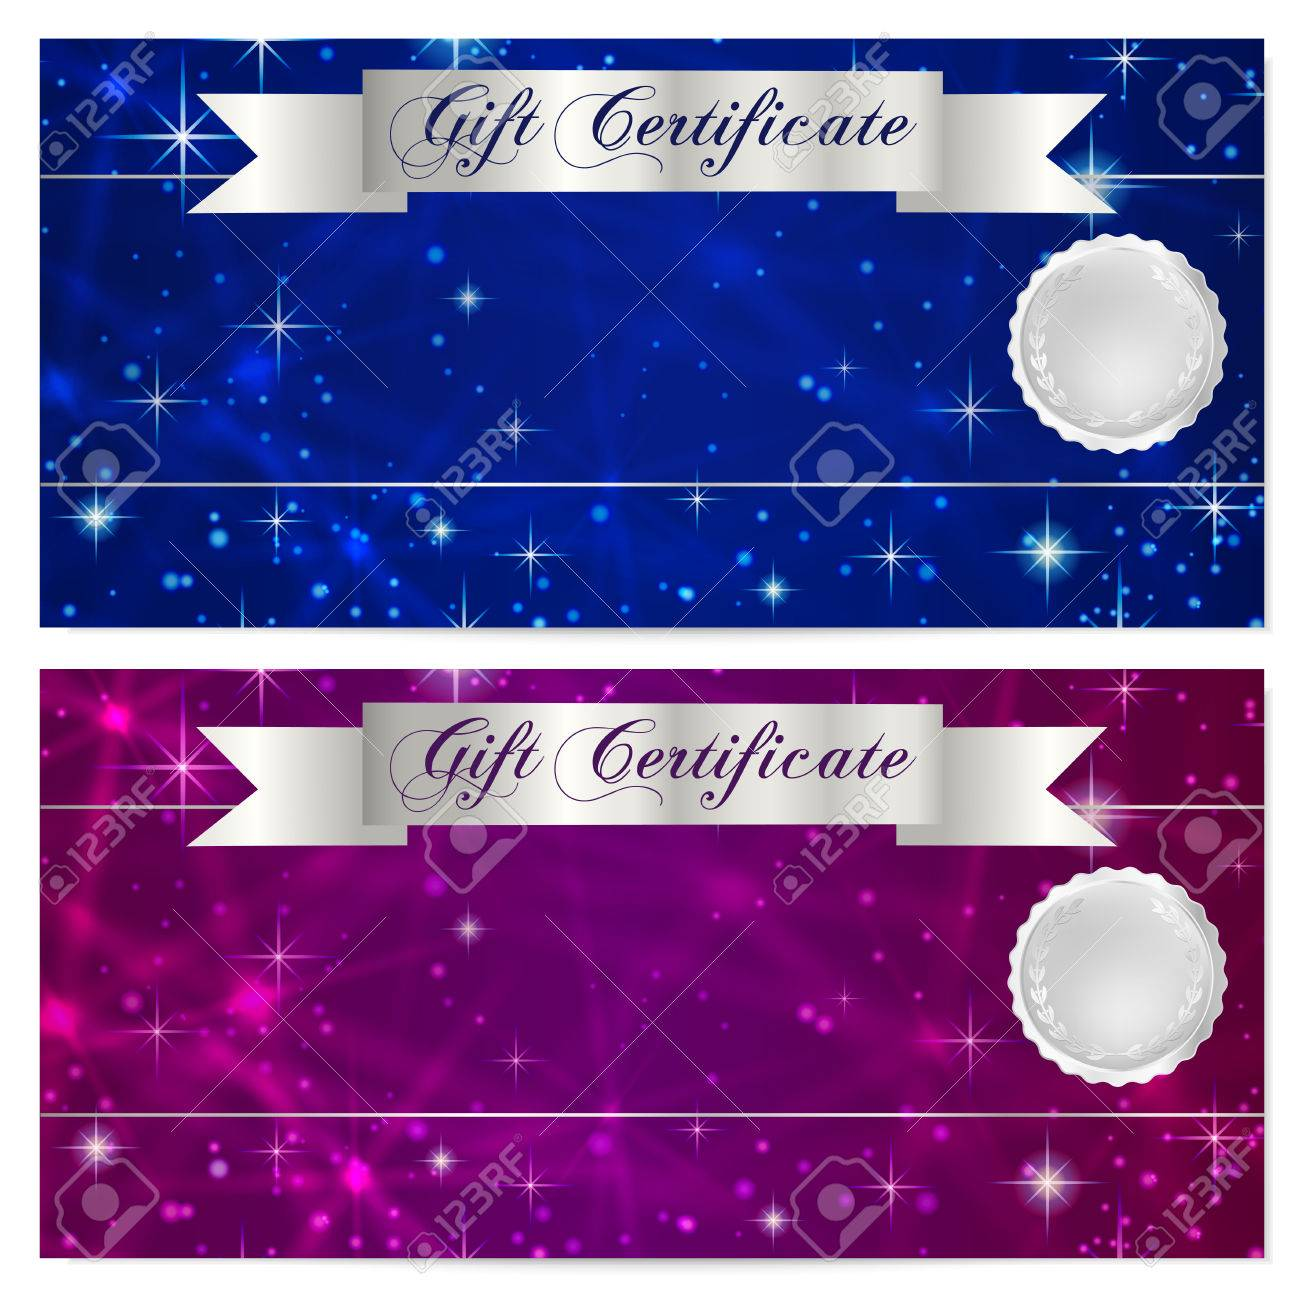 Gift Certificate, Voucher, Coupon, Reward Or Gift Card Template ...